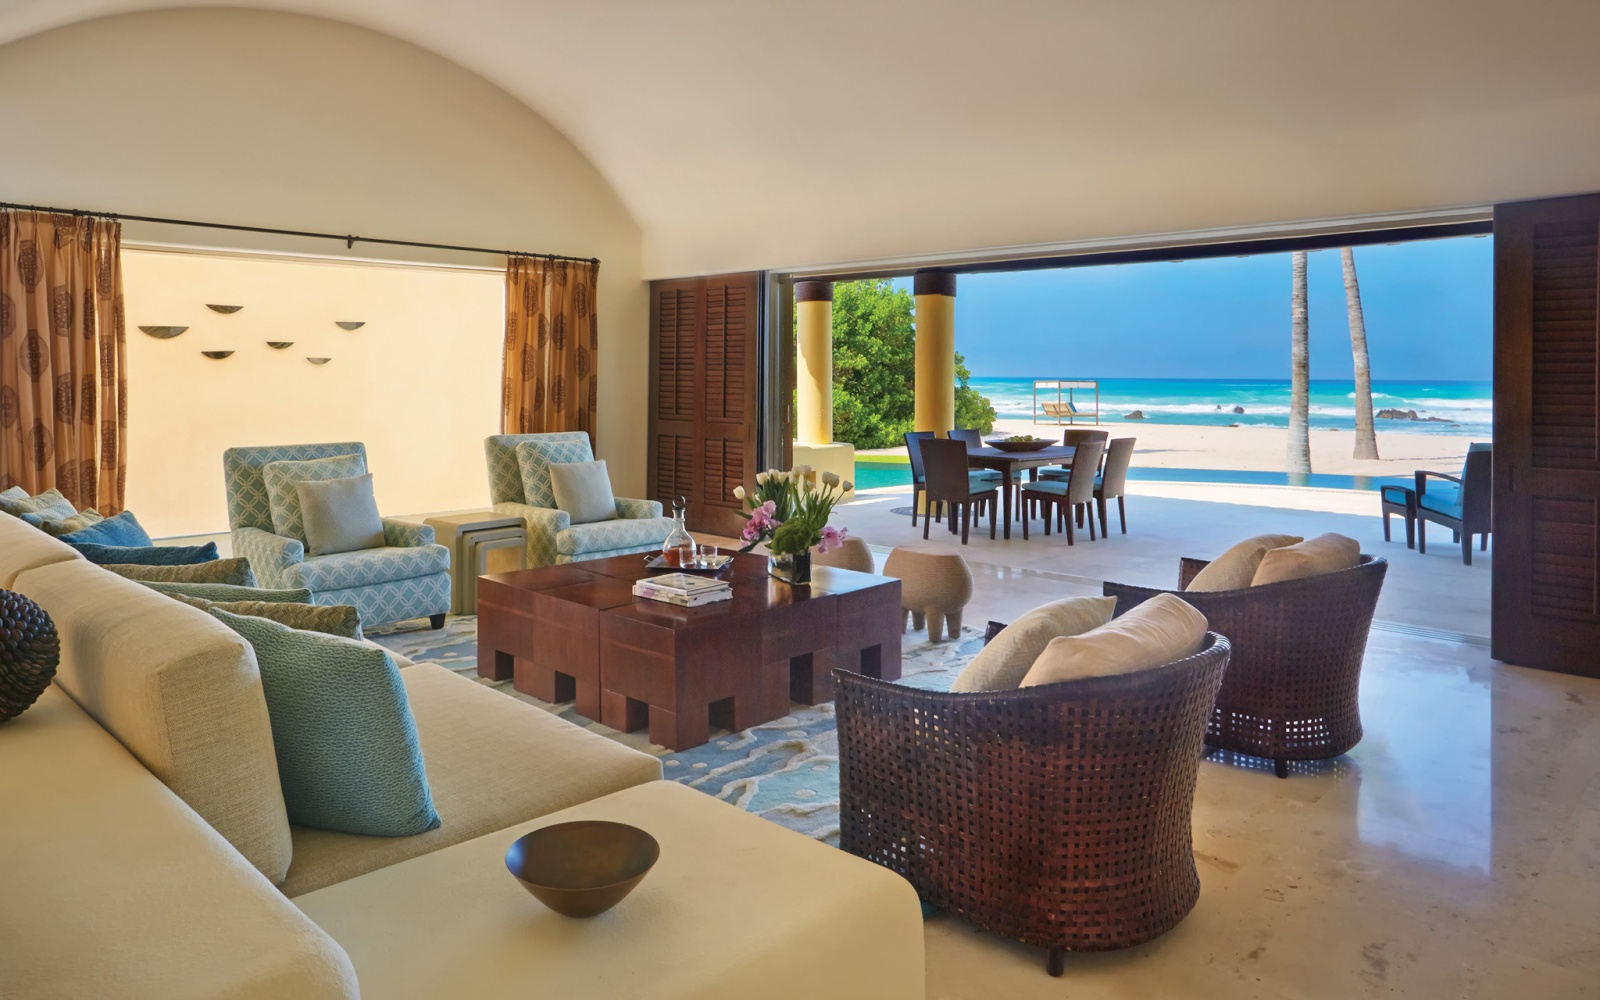 Four Seasons beach Resort in Punta Mita, Mexico